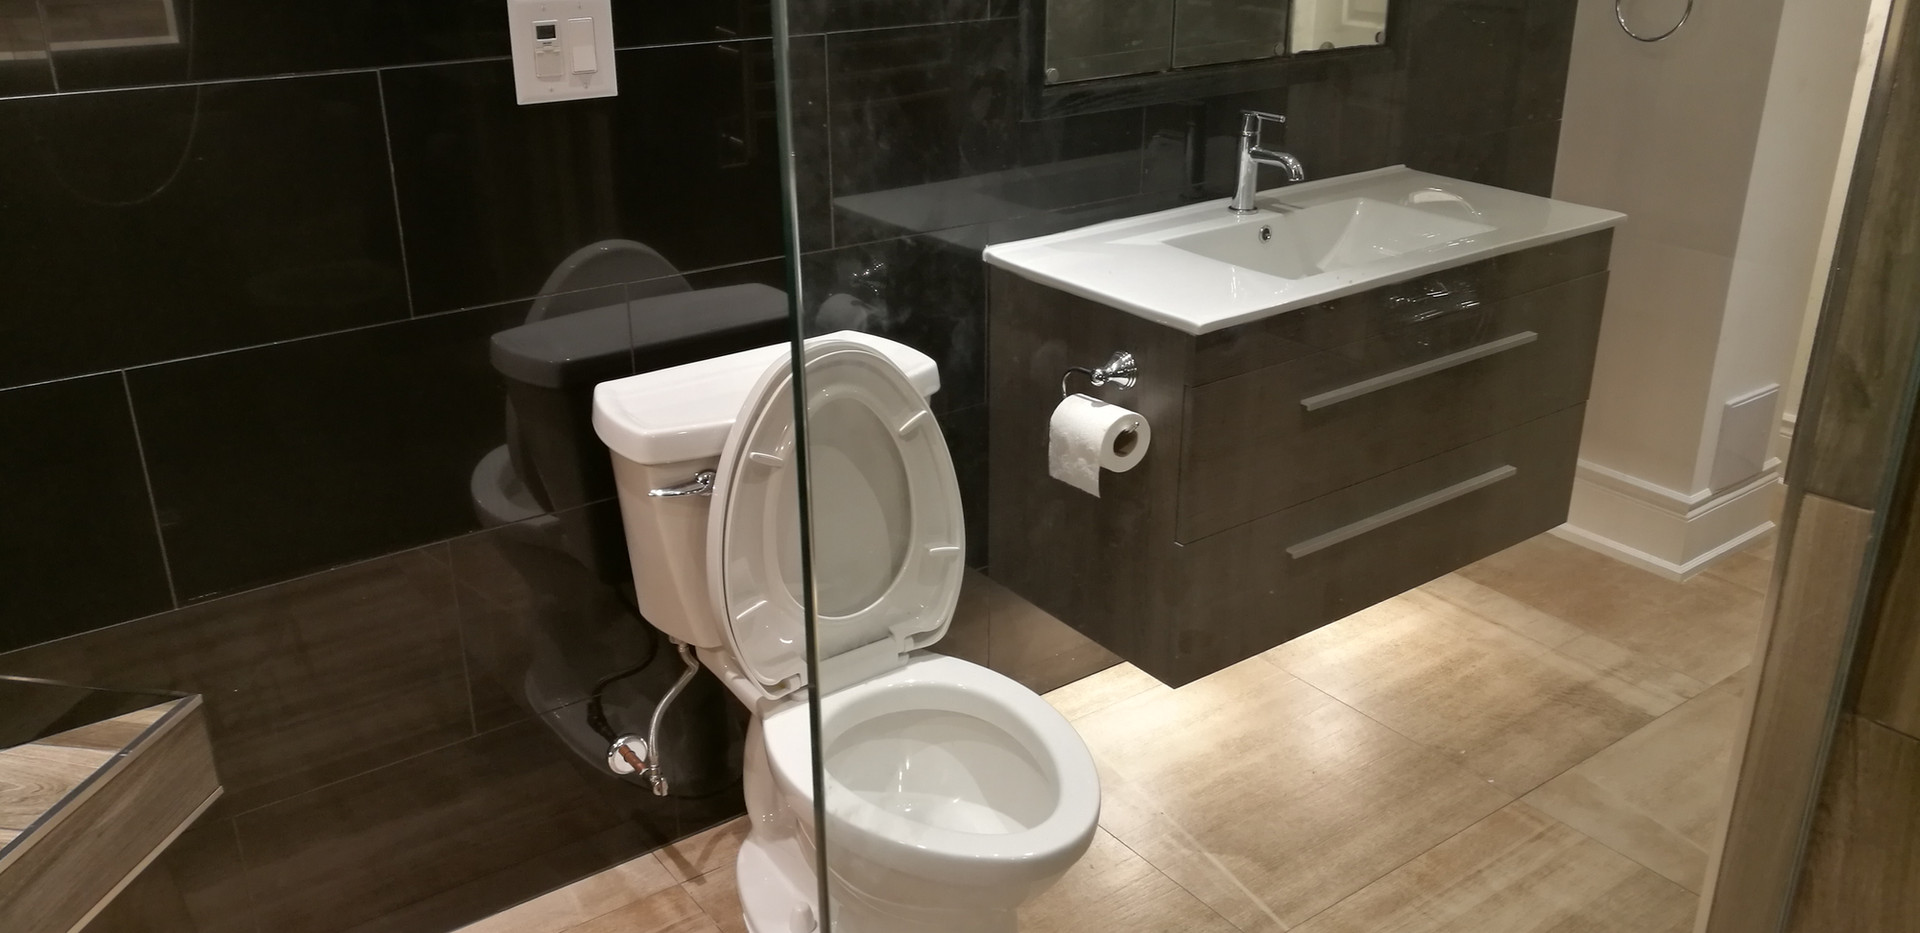 View of Toilet And Sink